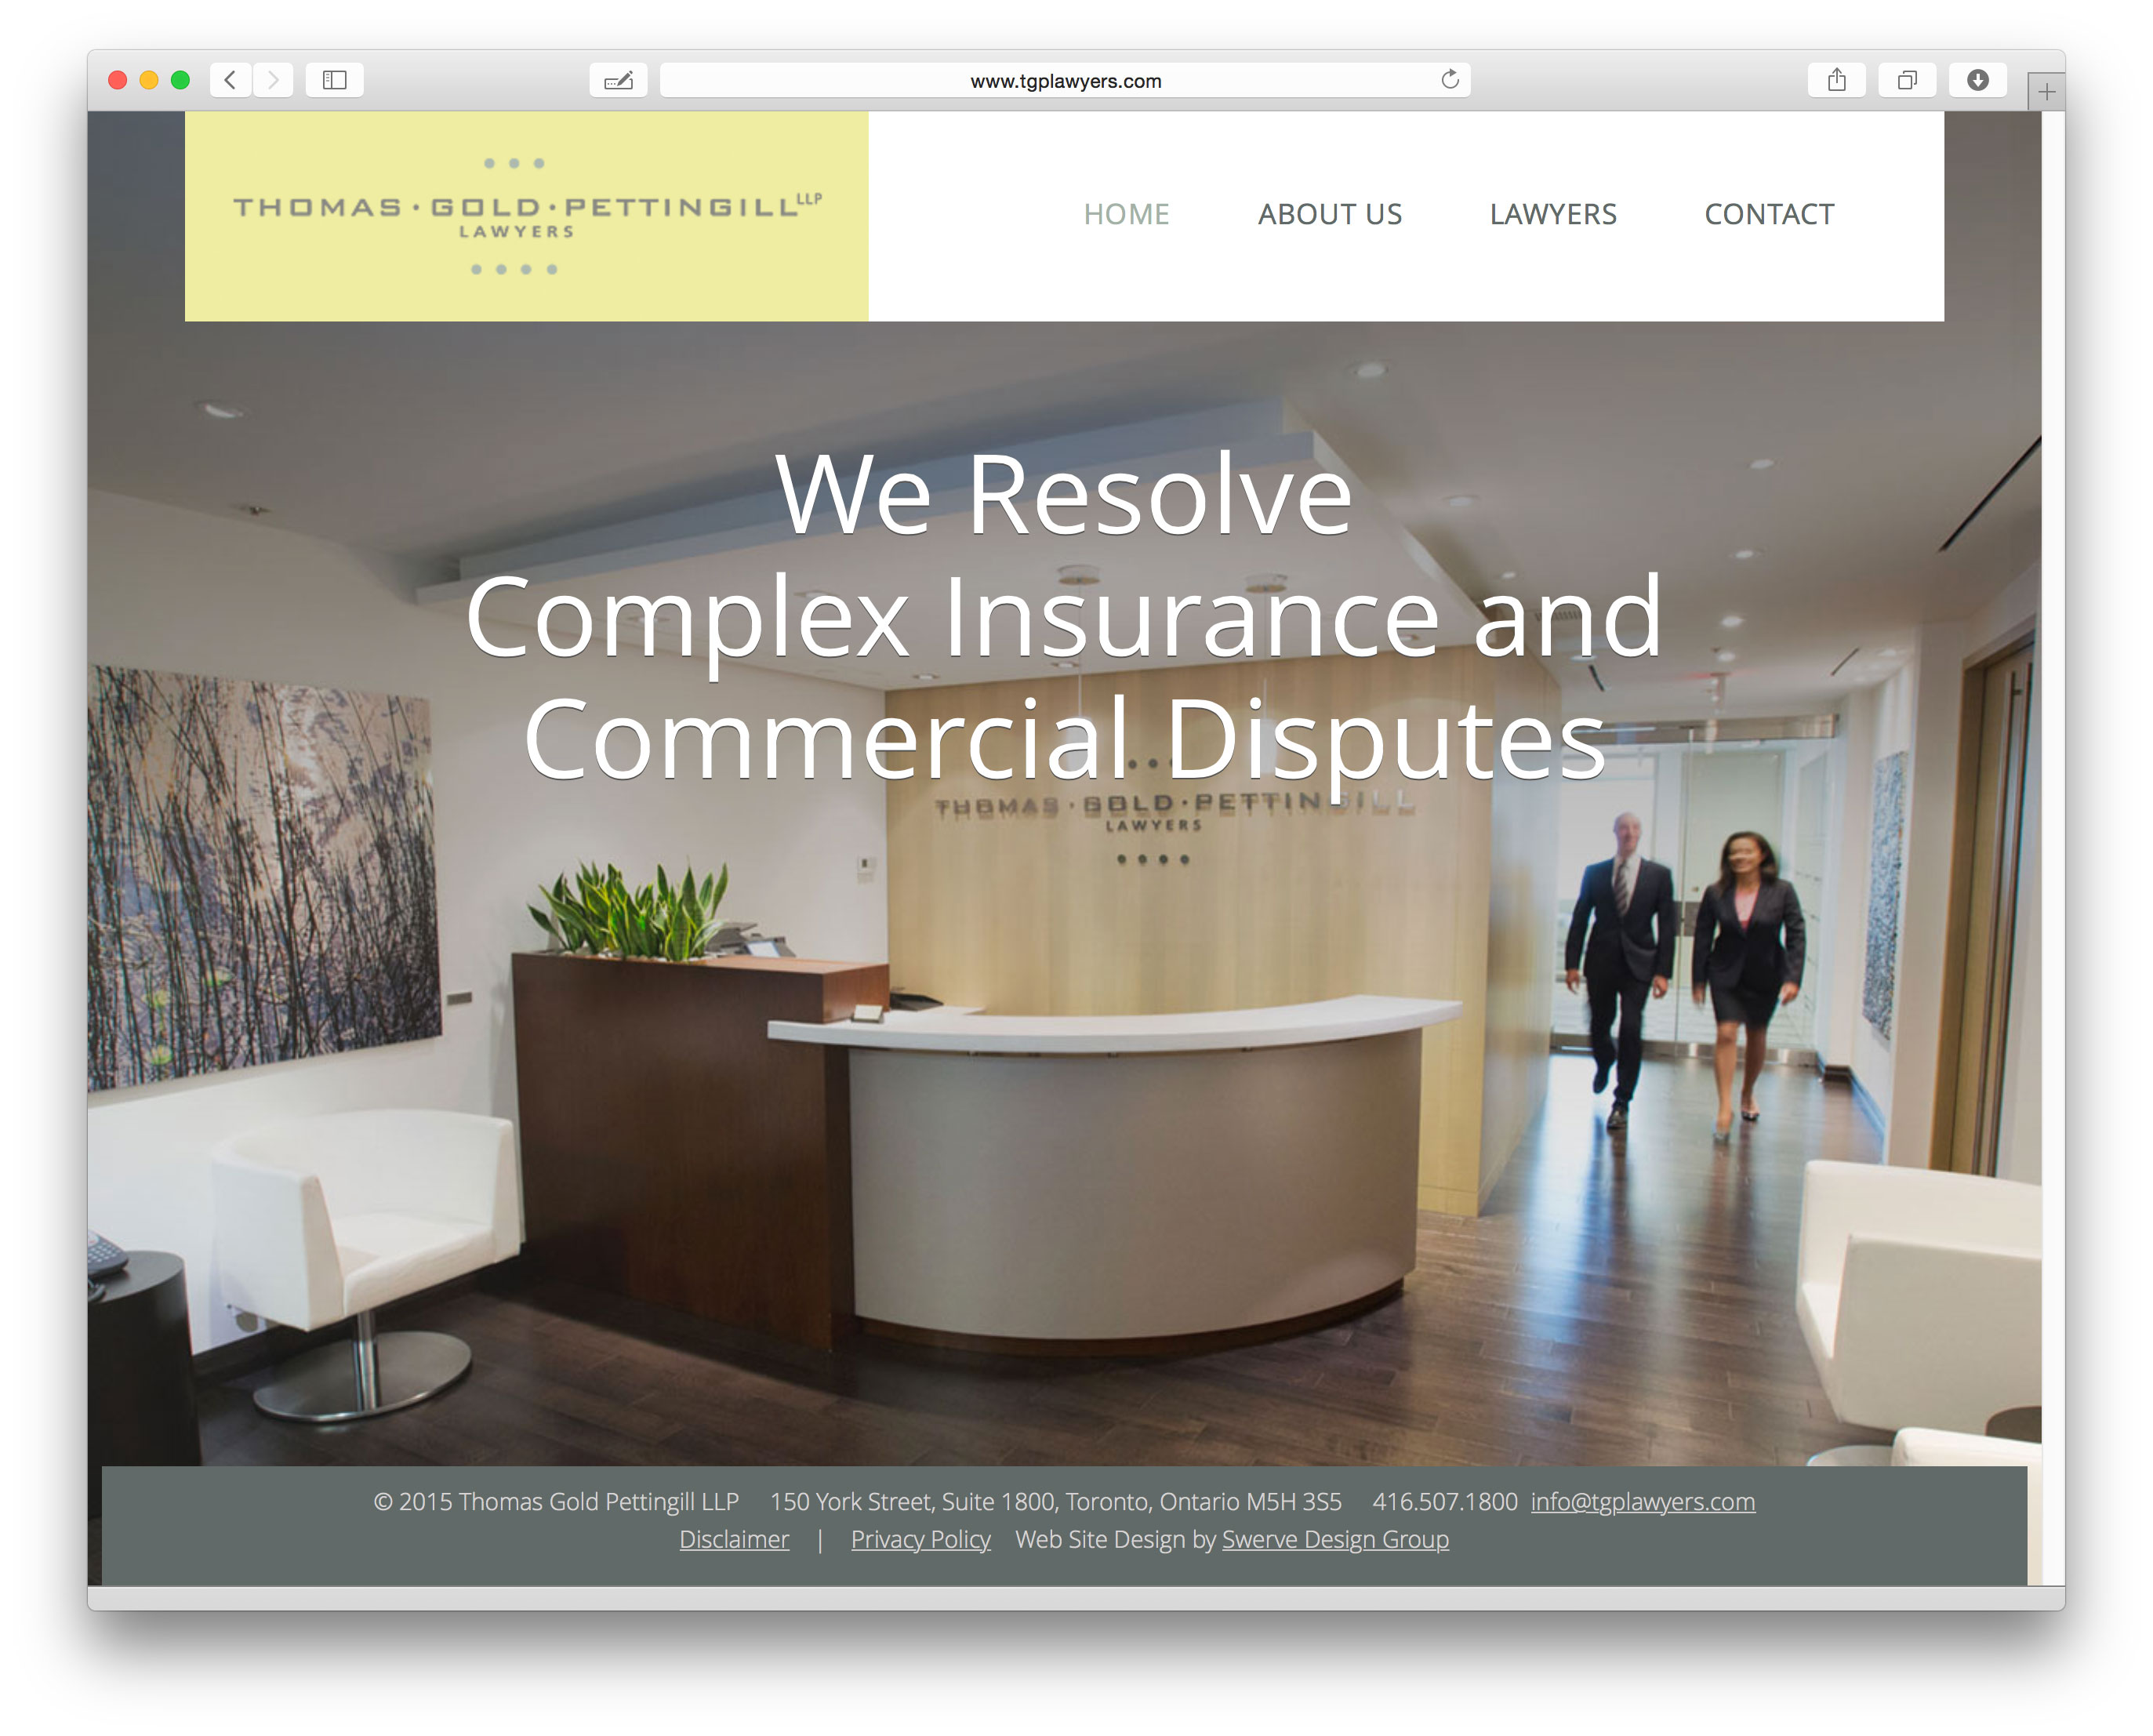 Law Website Design for Toronto firm TGP